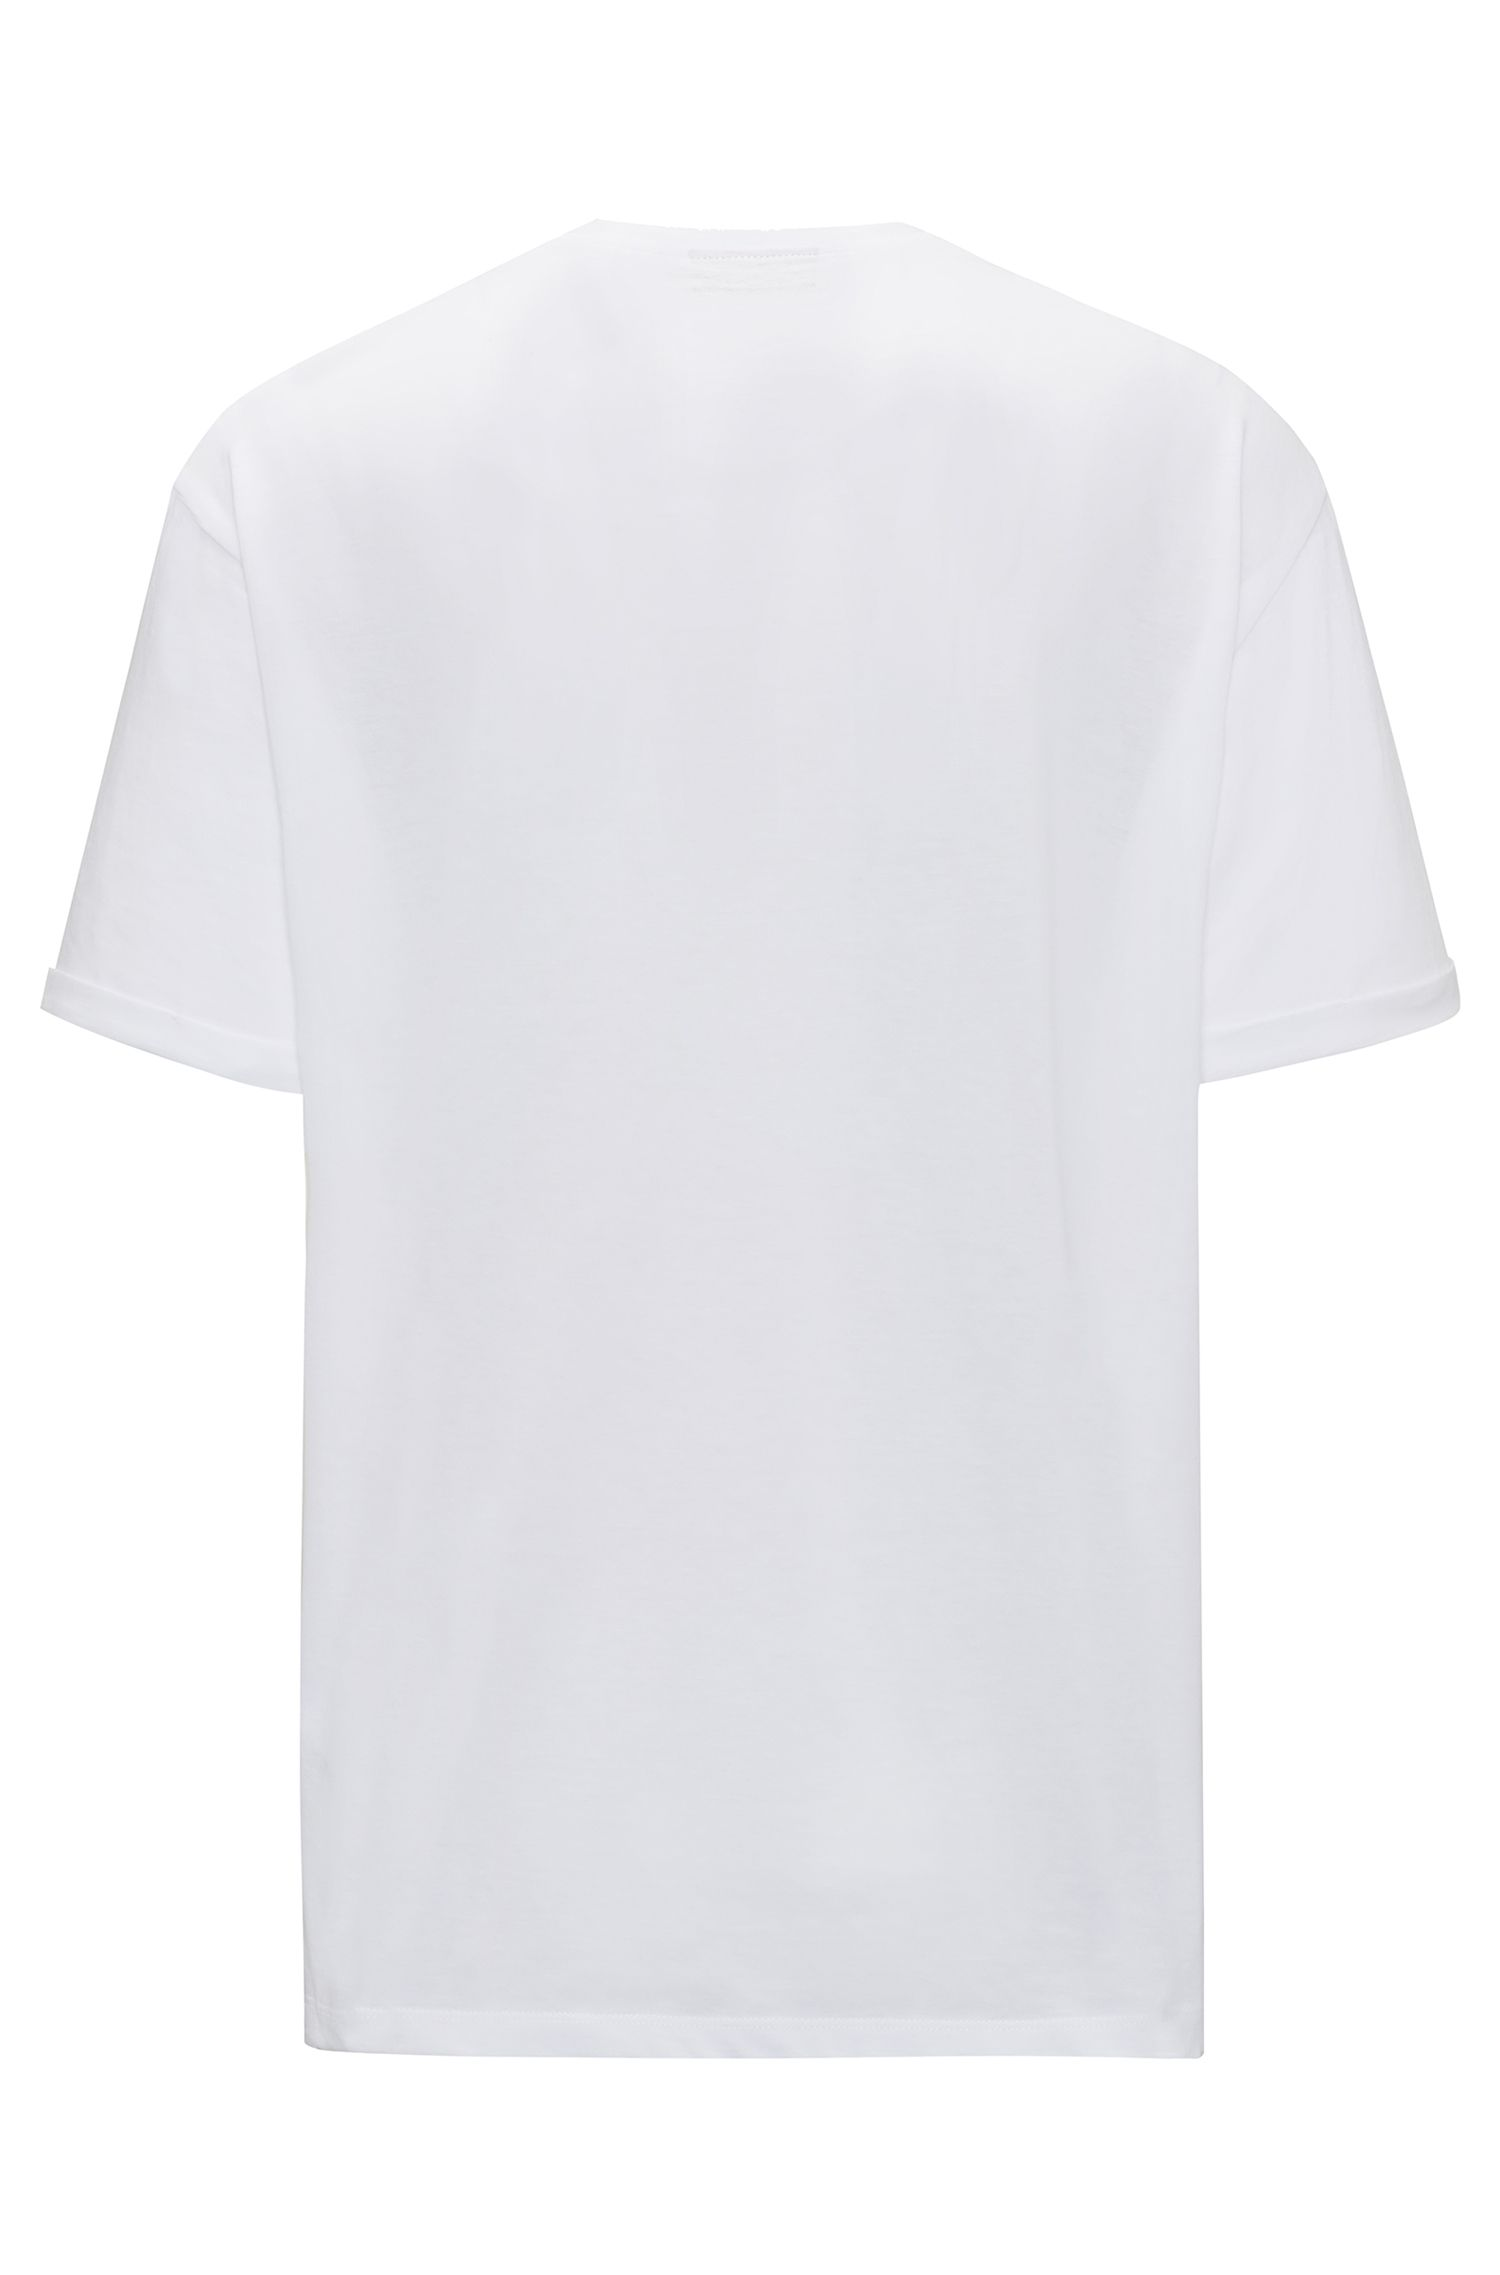 Relaxed-fit T-shirt in cotton with reverse logo print, White